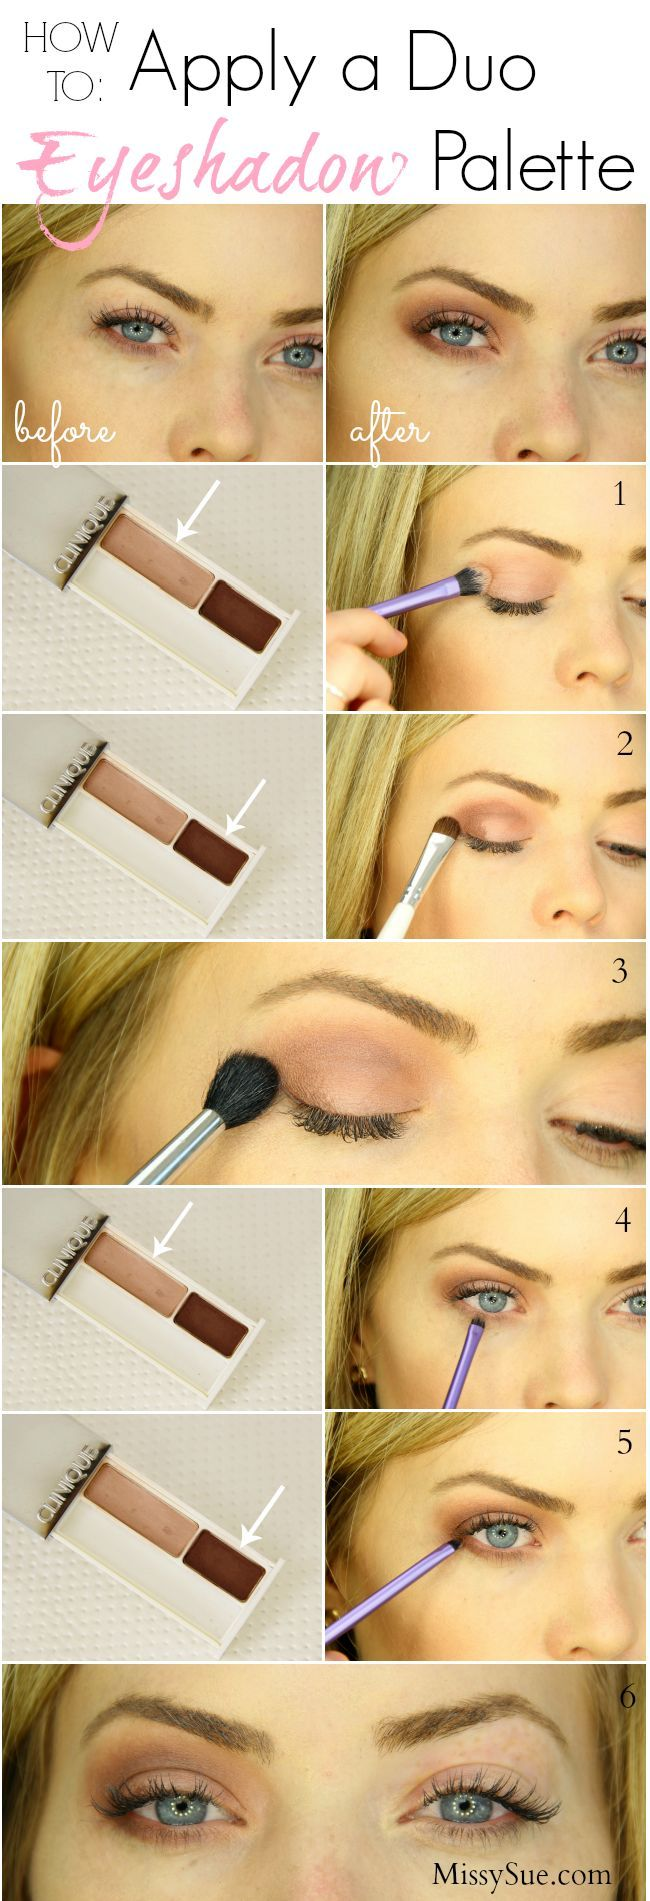 Best 25+ Applying Eyeshadow Ideas On Pinterest